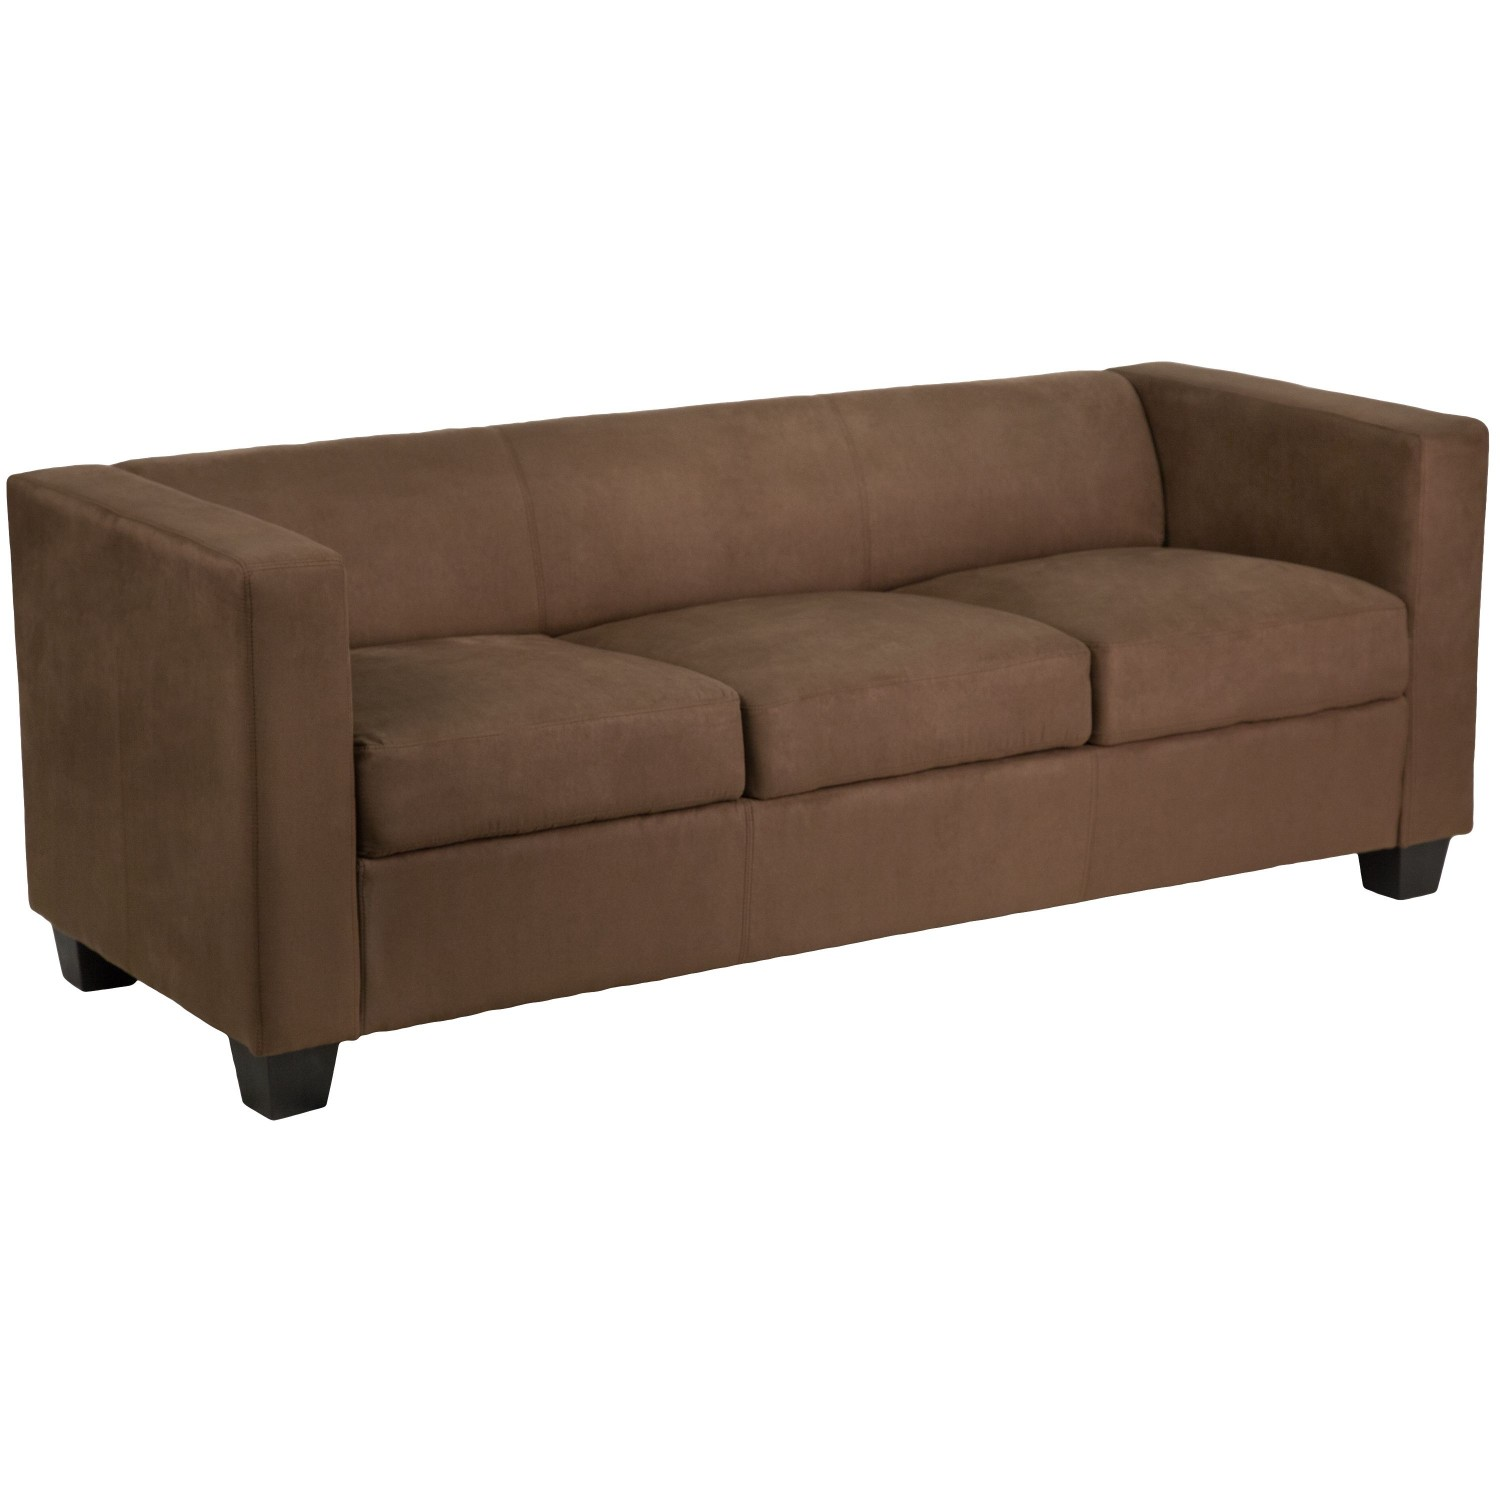 Flash Furniture Y-H901-3-CHOC-BN-GG Prestige Series Chocolate Brown Microfiber Sofa